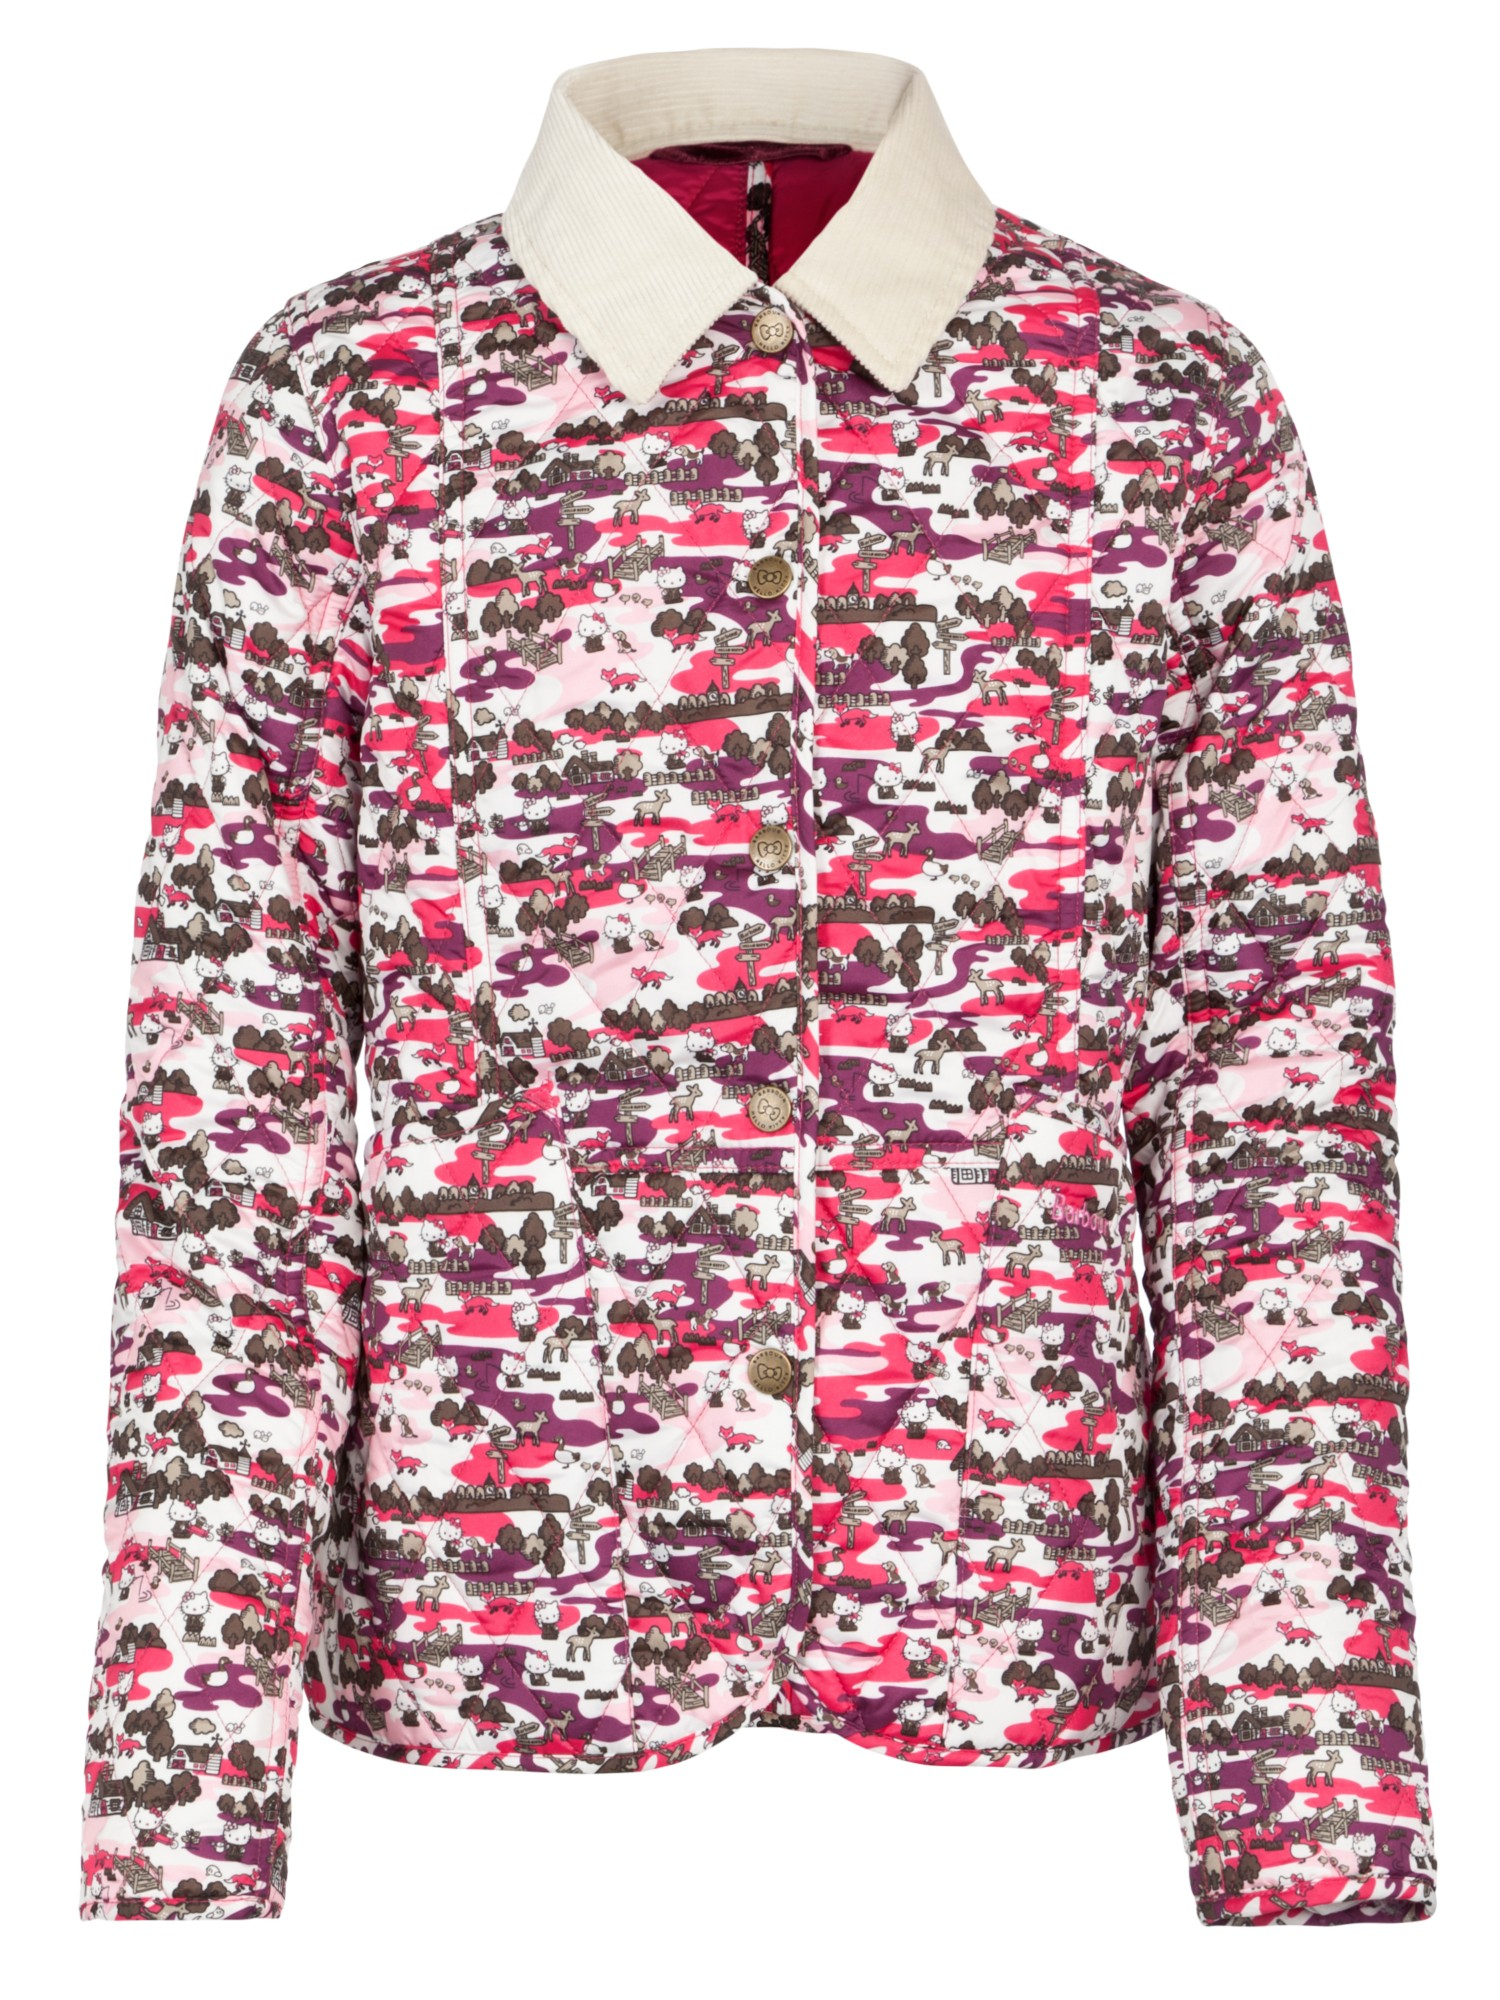 8f5deae86 Barbour Girls' Clara Hello Kitty Quilt Jacket in Pink - Lyst